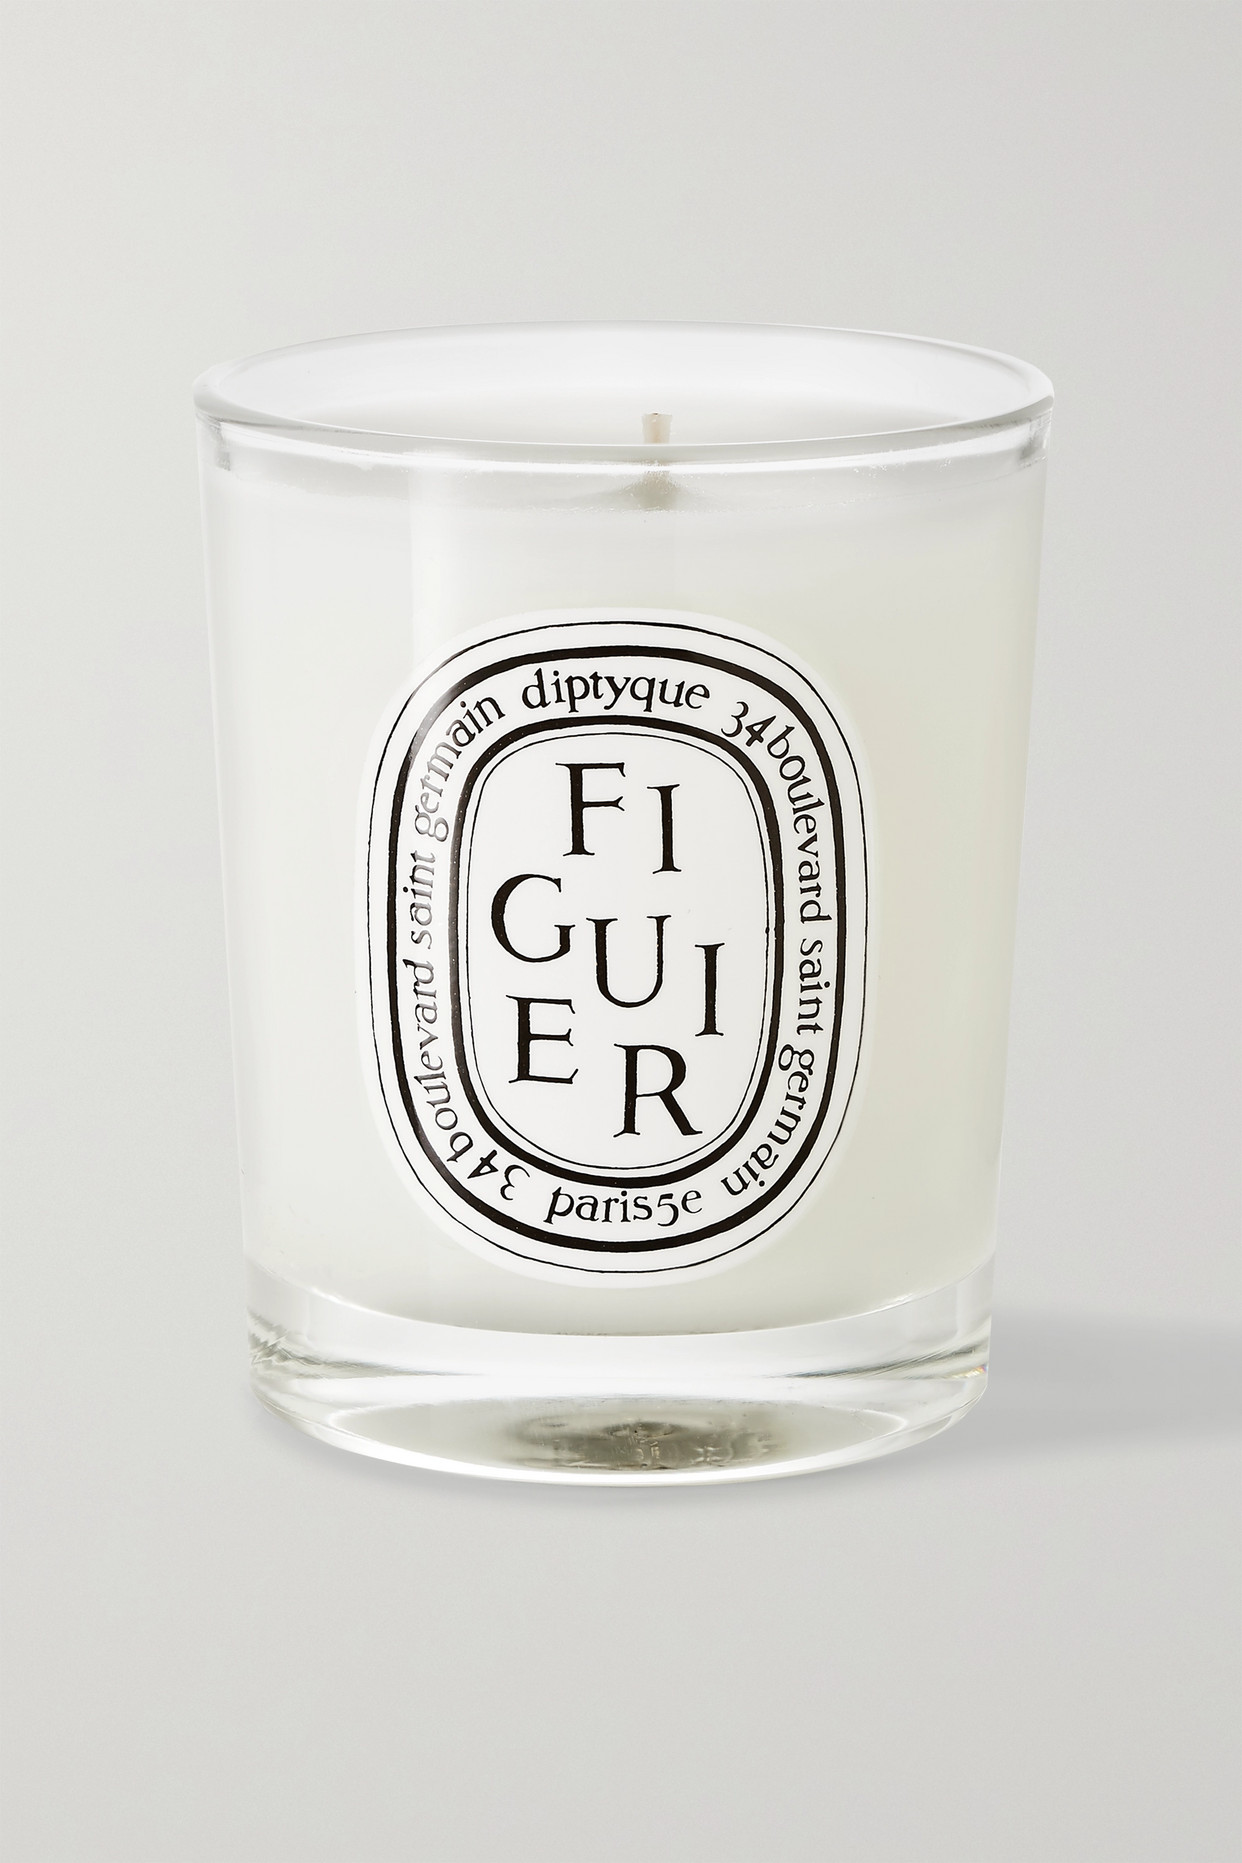 DIPTYQUE - Figuier Scented Candle, 70g - one size